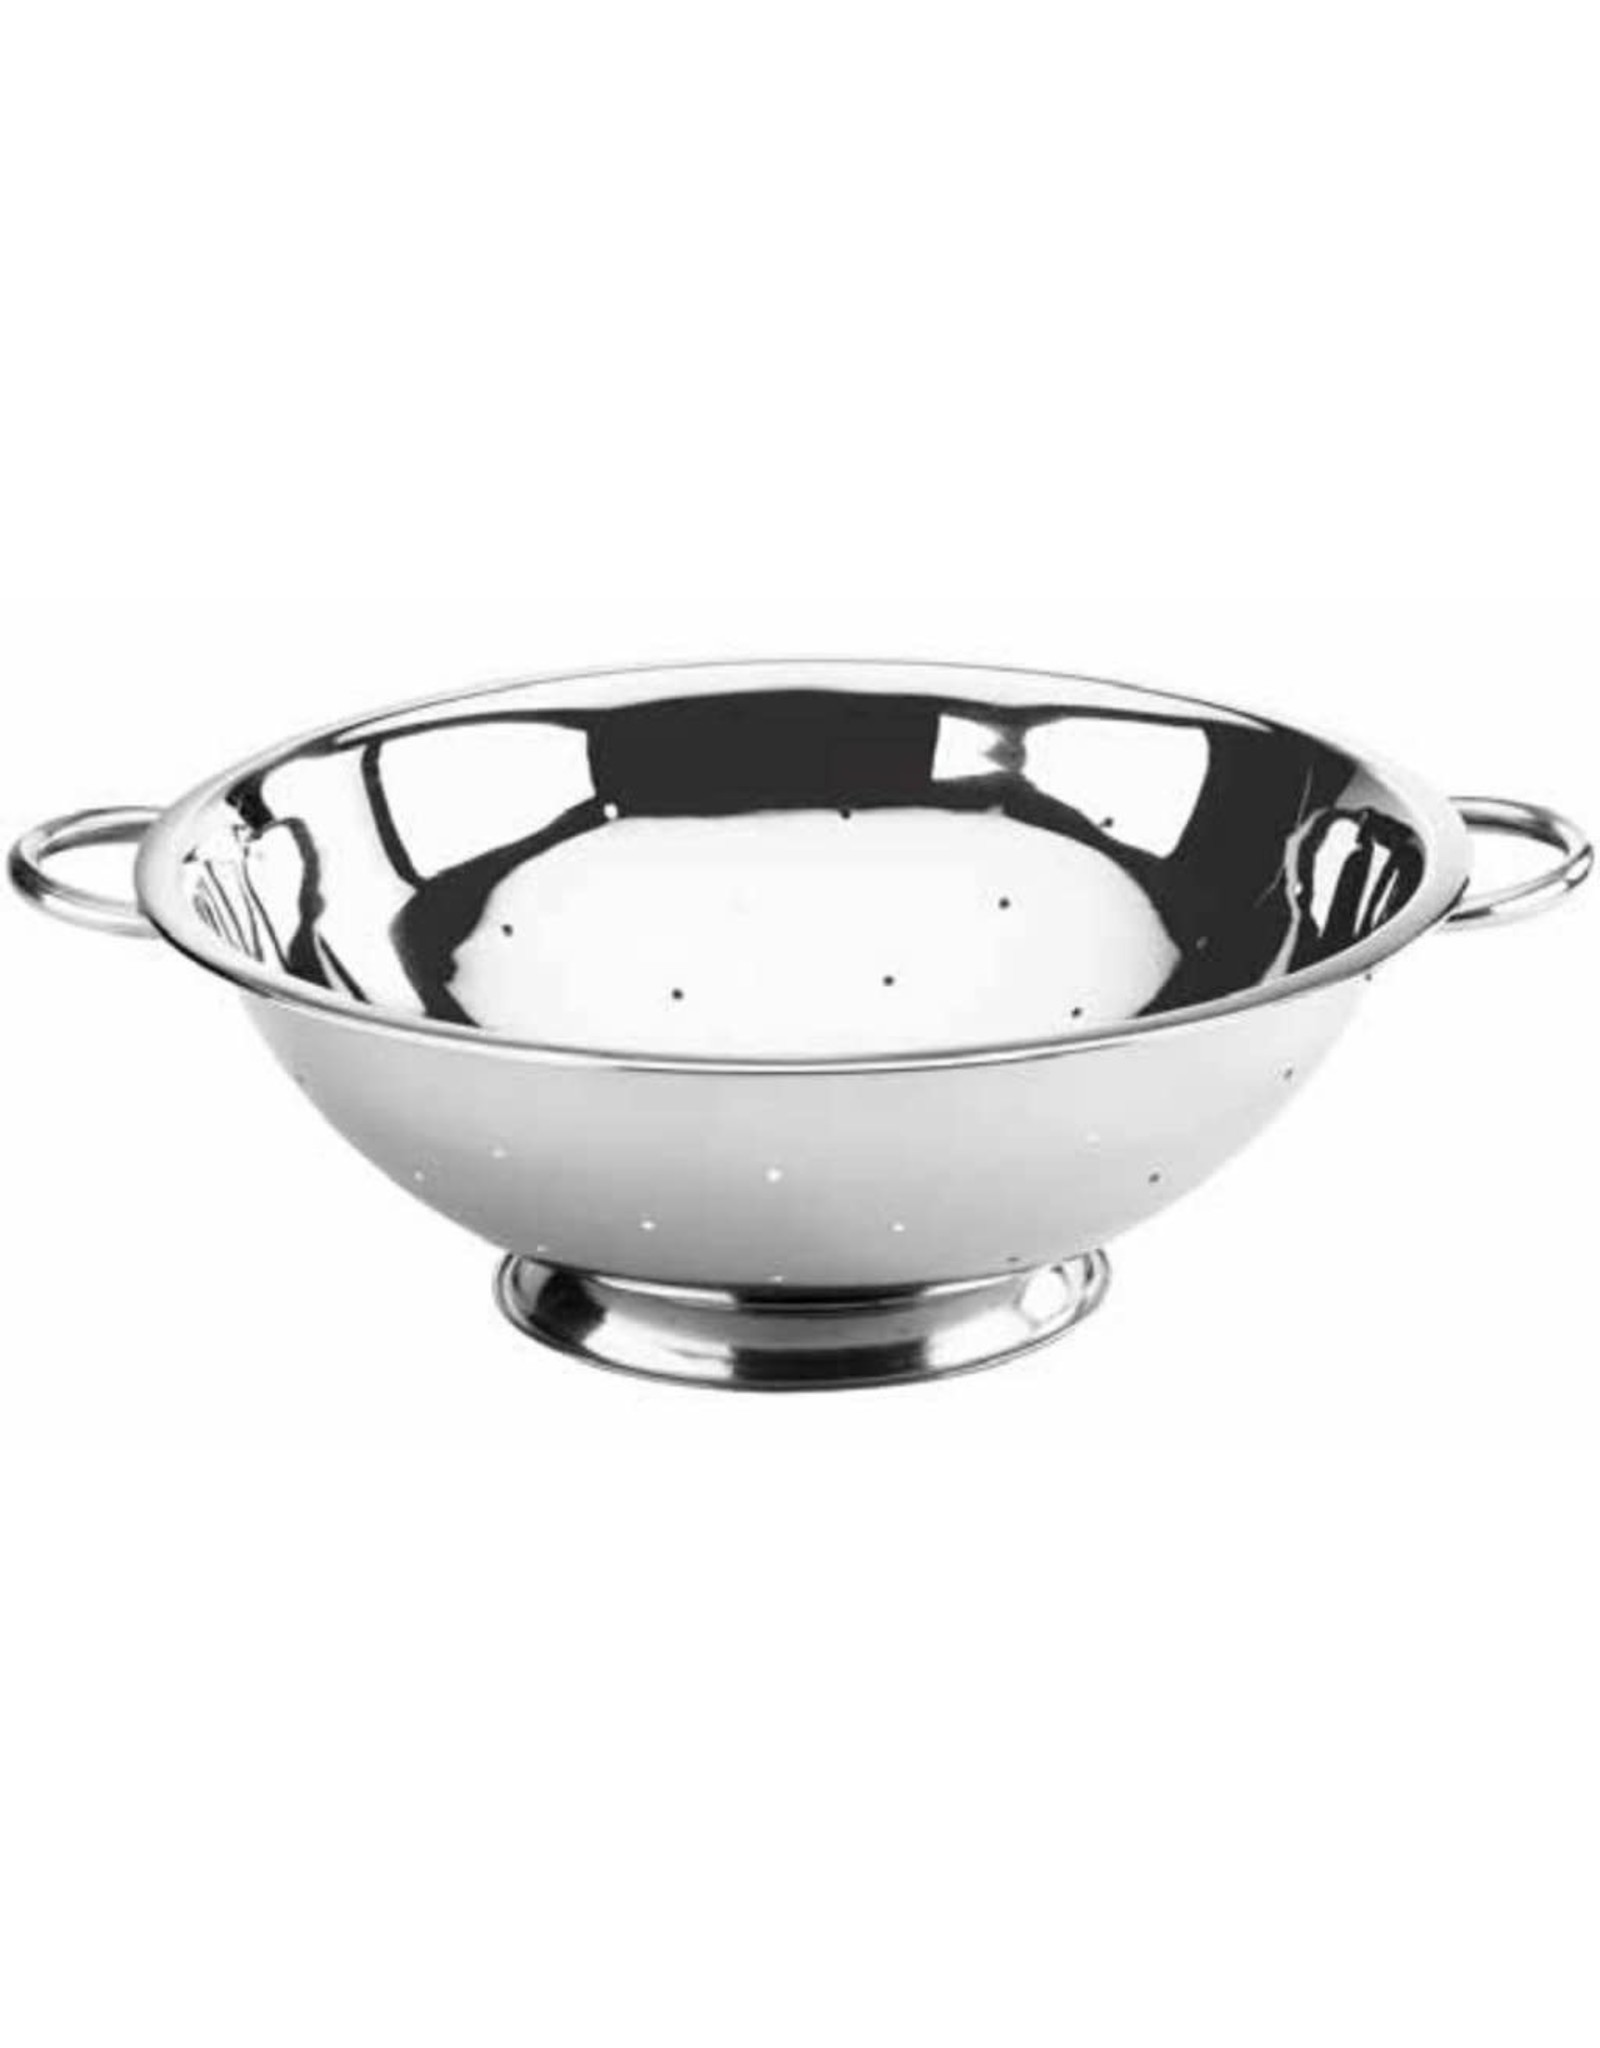 Cuisipro CUISIPRO Silver Professional Footed Colander